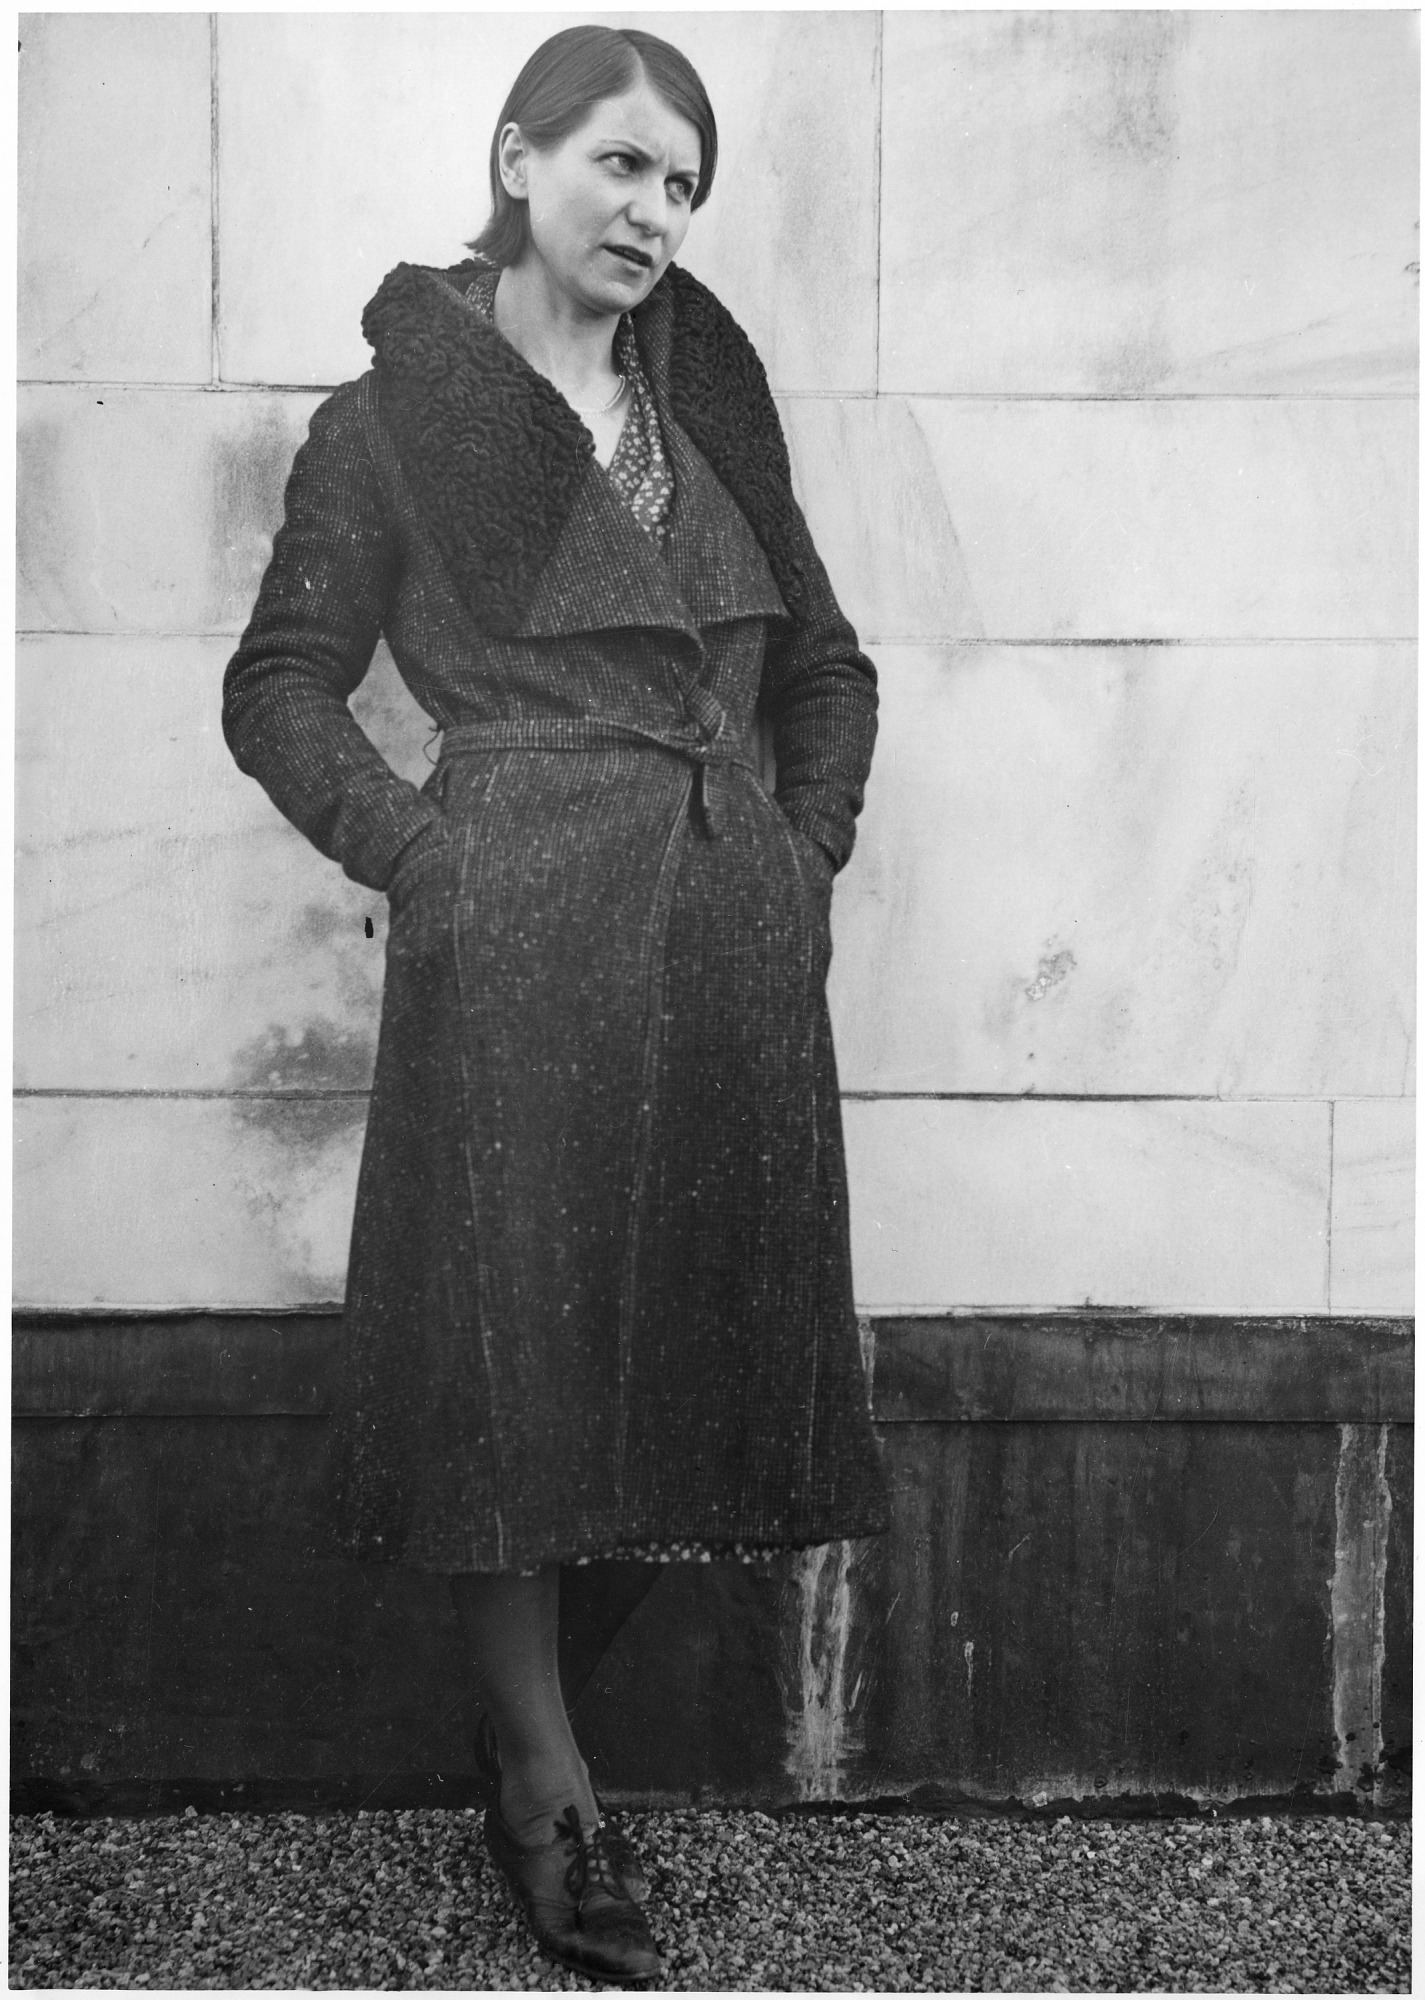 Emma Reh (1896-1982), Smithsonian Institution Archives, SIA Acc. 90-105 [SIA2009-2151].